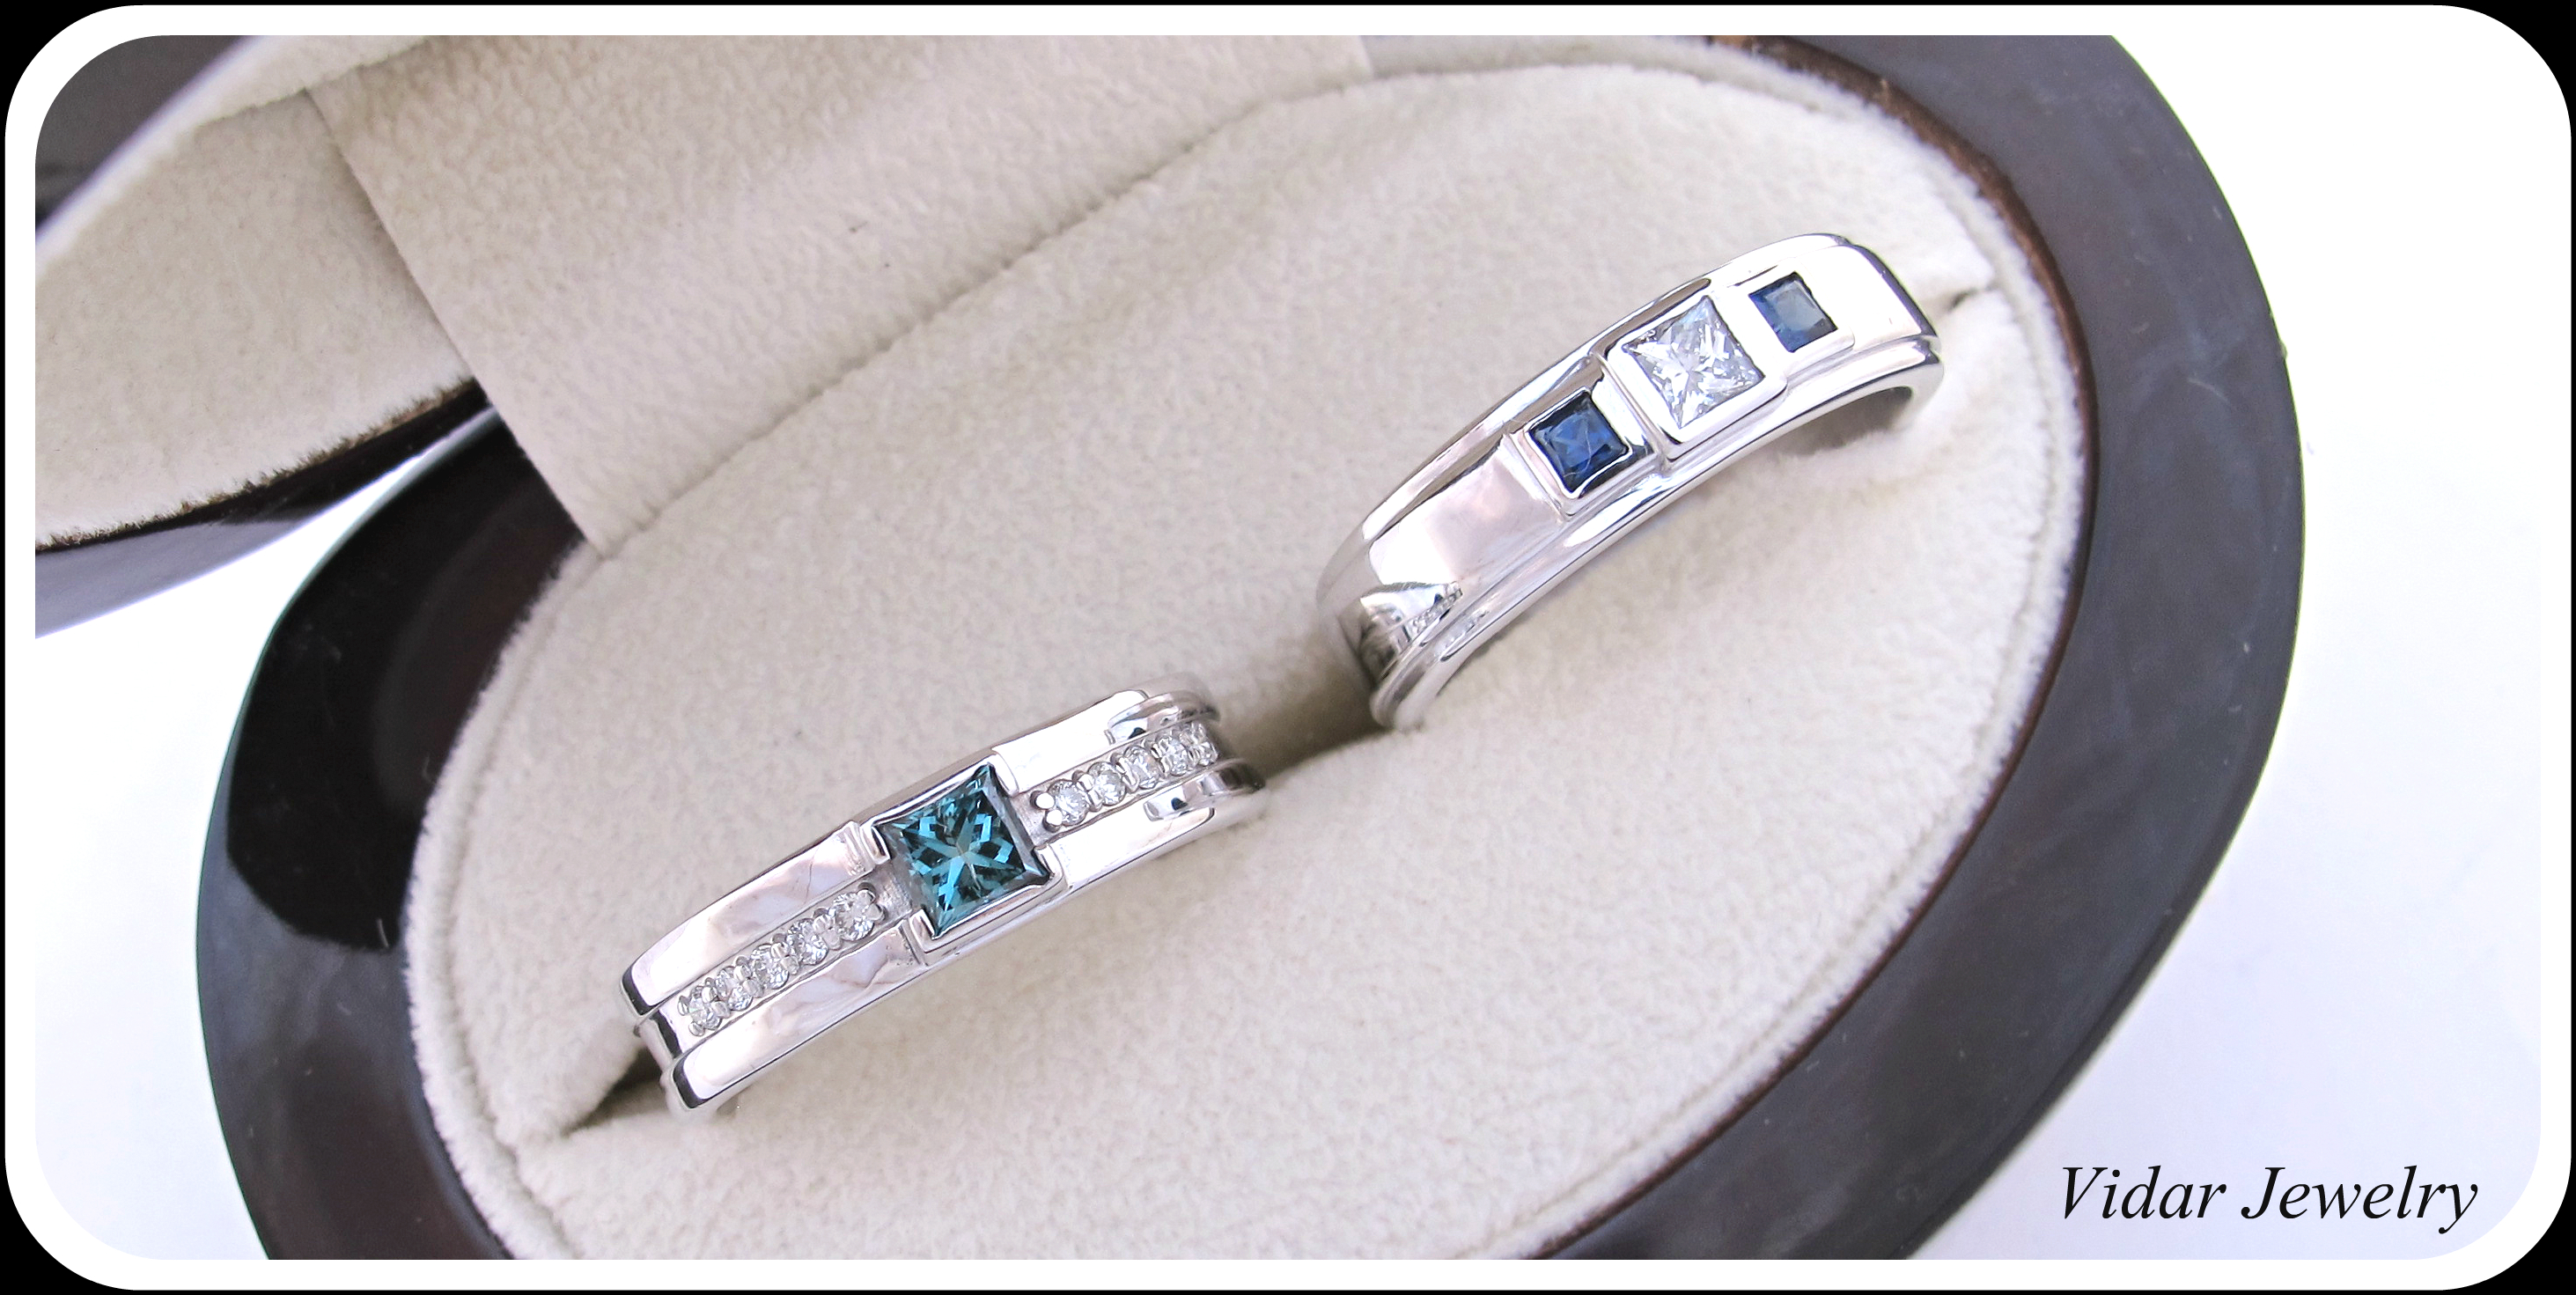 vidarjewelry sapphire mens wedding band His And Her Matching Blue Diamond Blue Sapphire Wedding Band Set